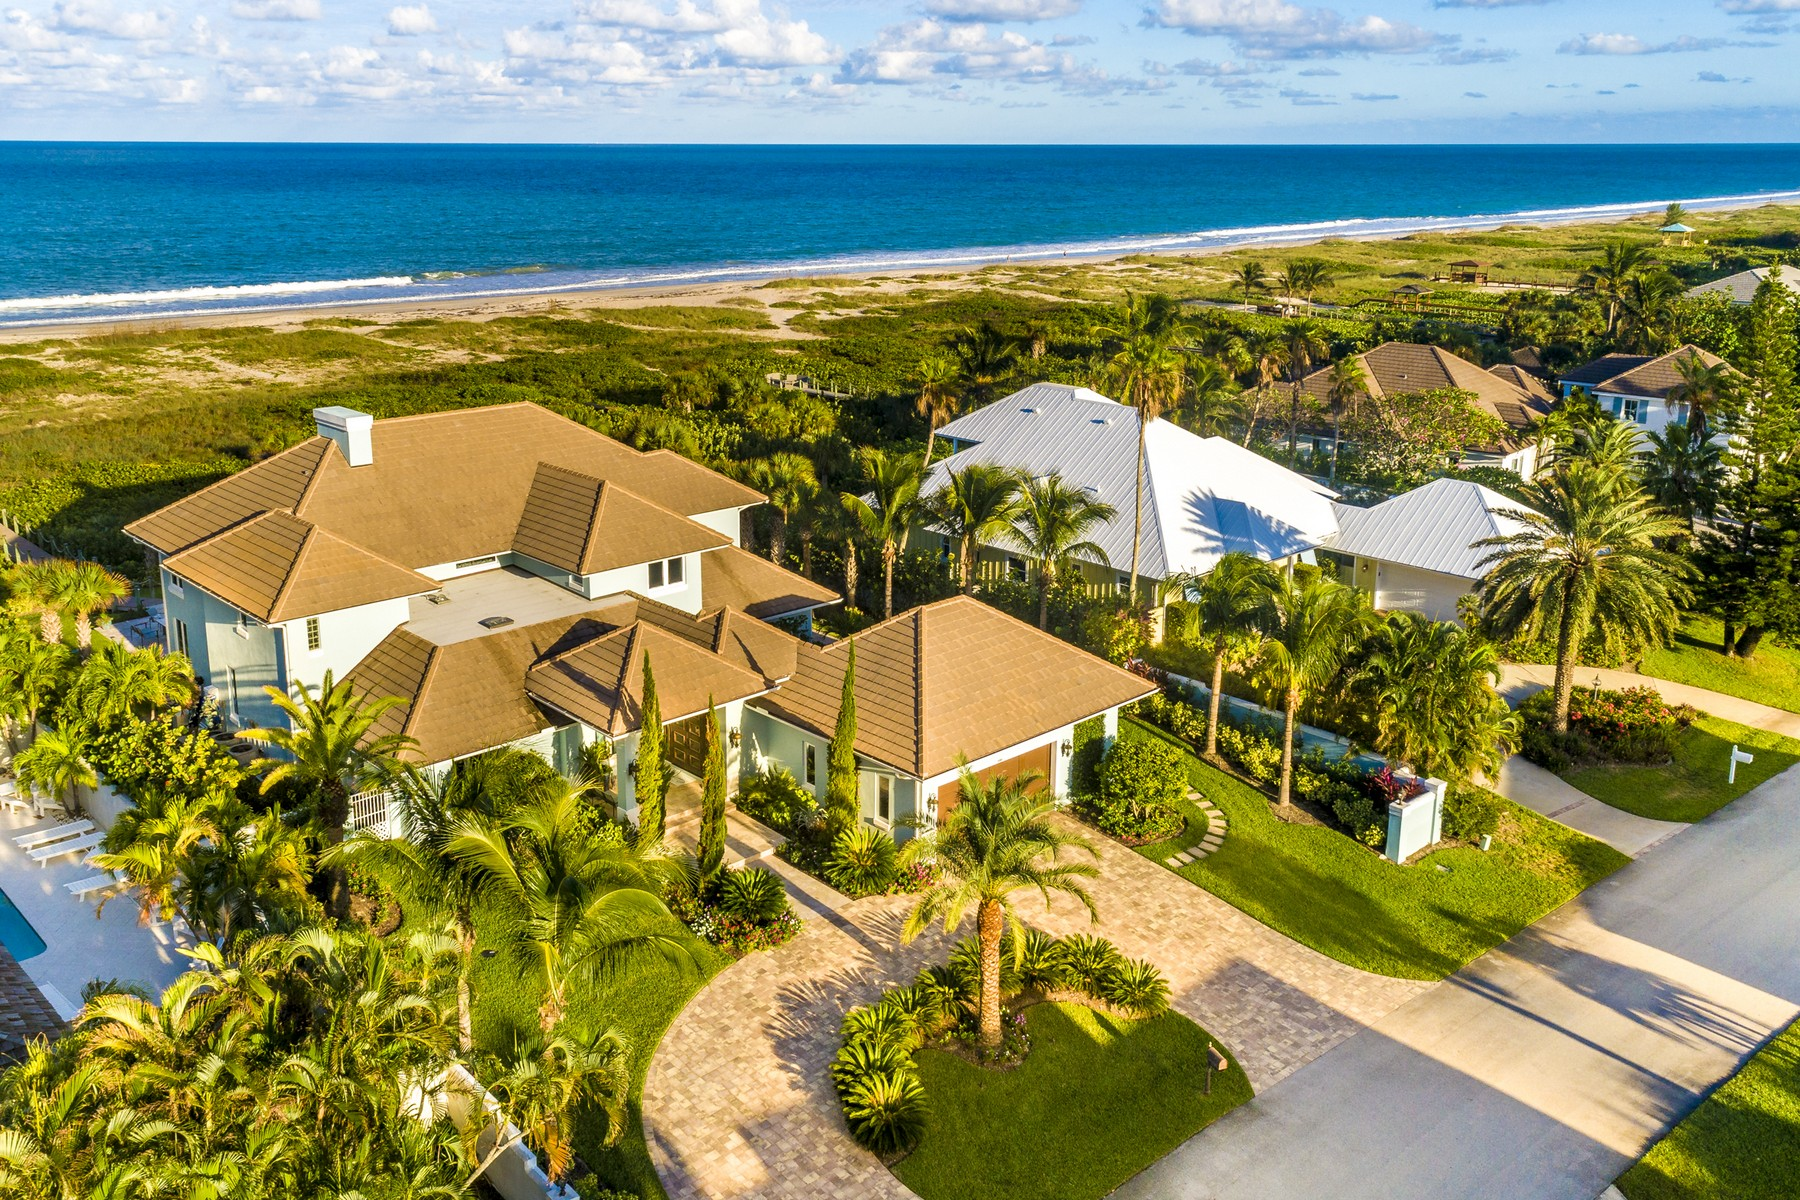 Property for Sale at Stunning Oceanfront Estate 1240 Olde Doubloon Drive Vero Beach, Florida 32963 United States